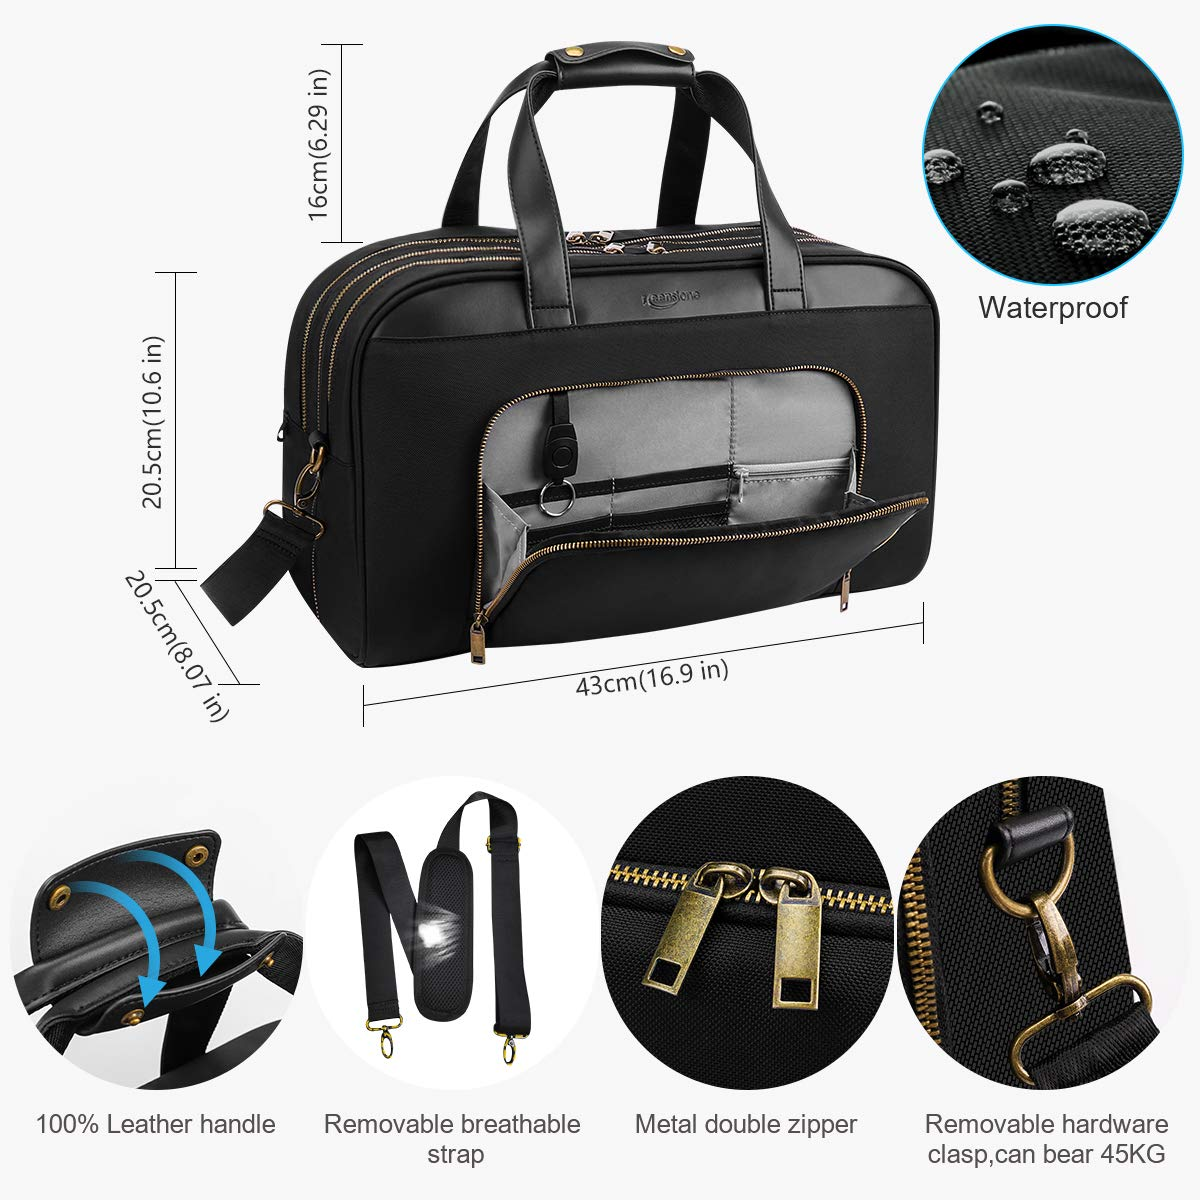 Keenstone Holdall Travel Bag for Laptop, Waterproof Business Bag for Men and Women, Durable Travel Duffel Bag with USB Weekend Bag Overnight Bag Carry On Luggage with Shoulder Strap -35L (Black)